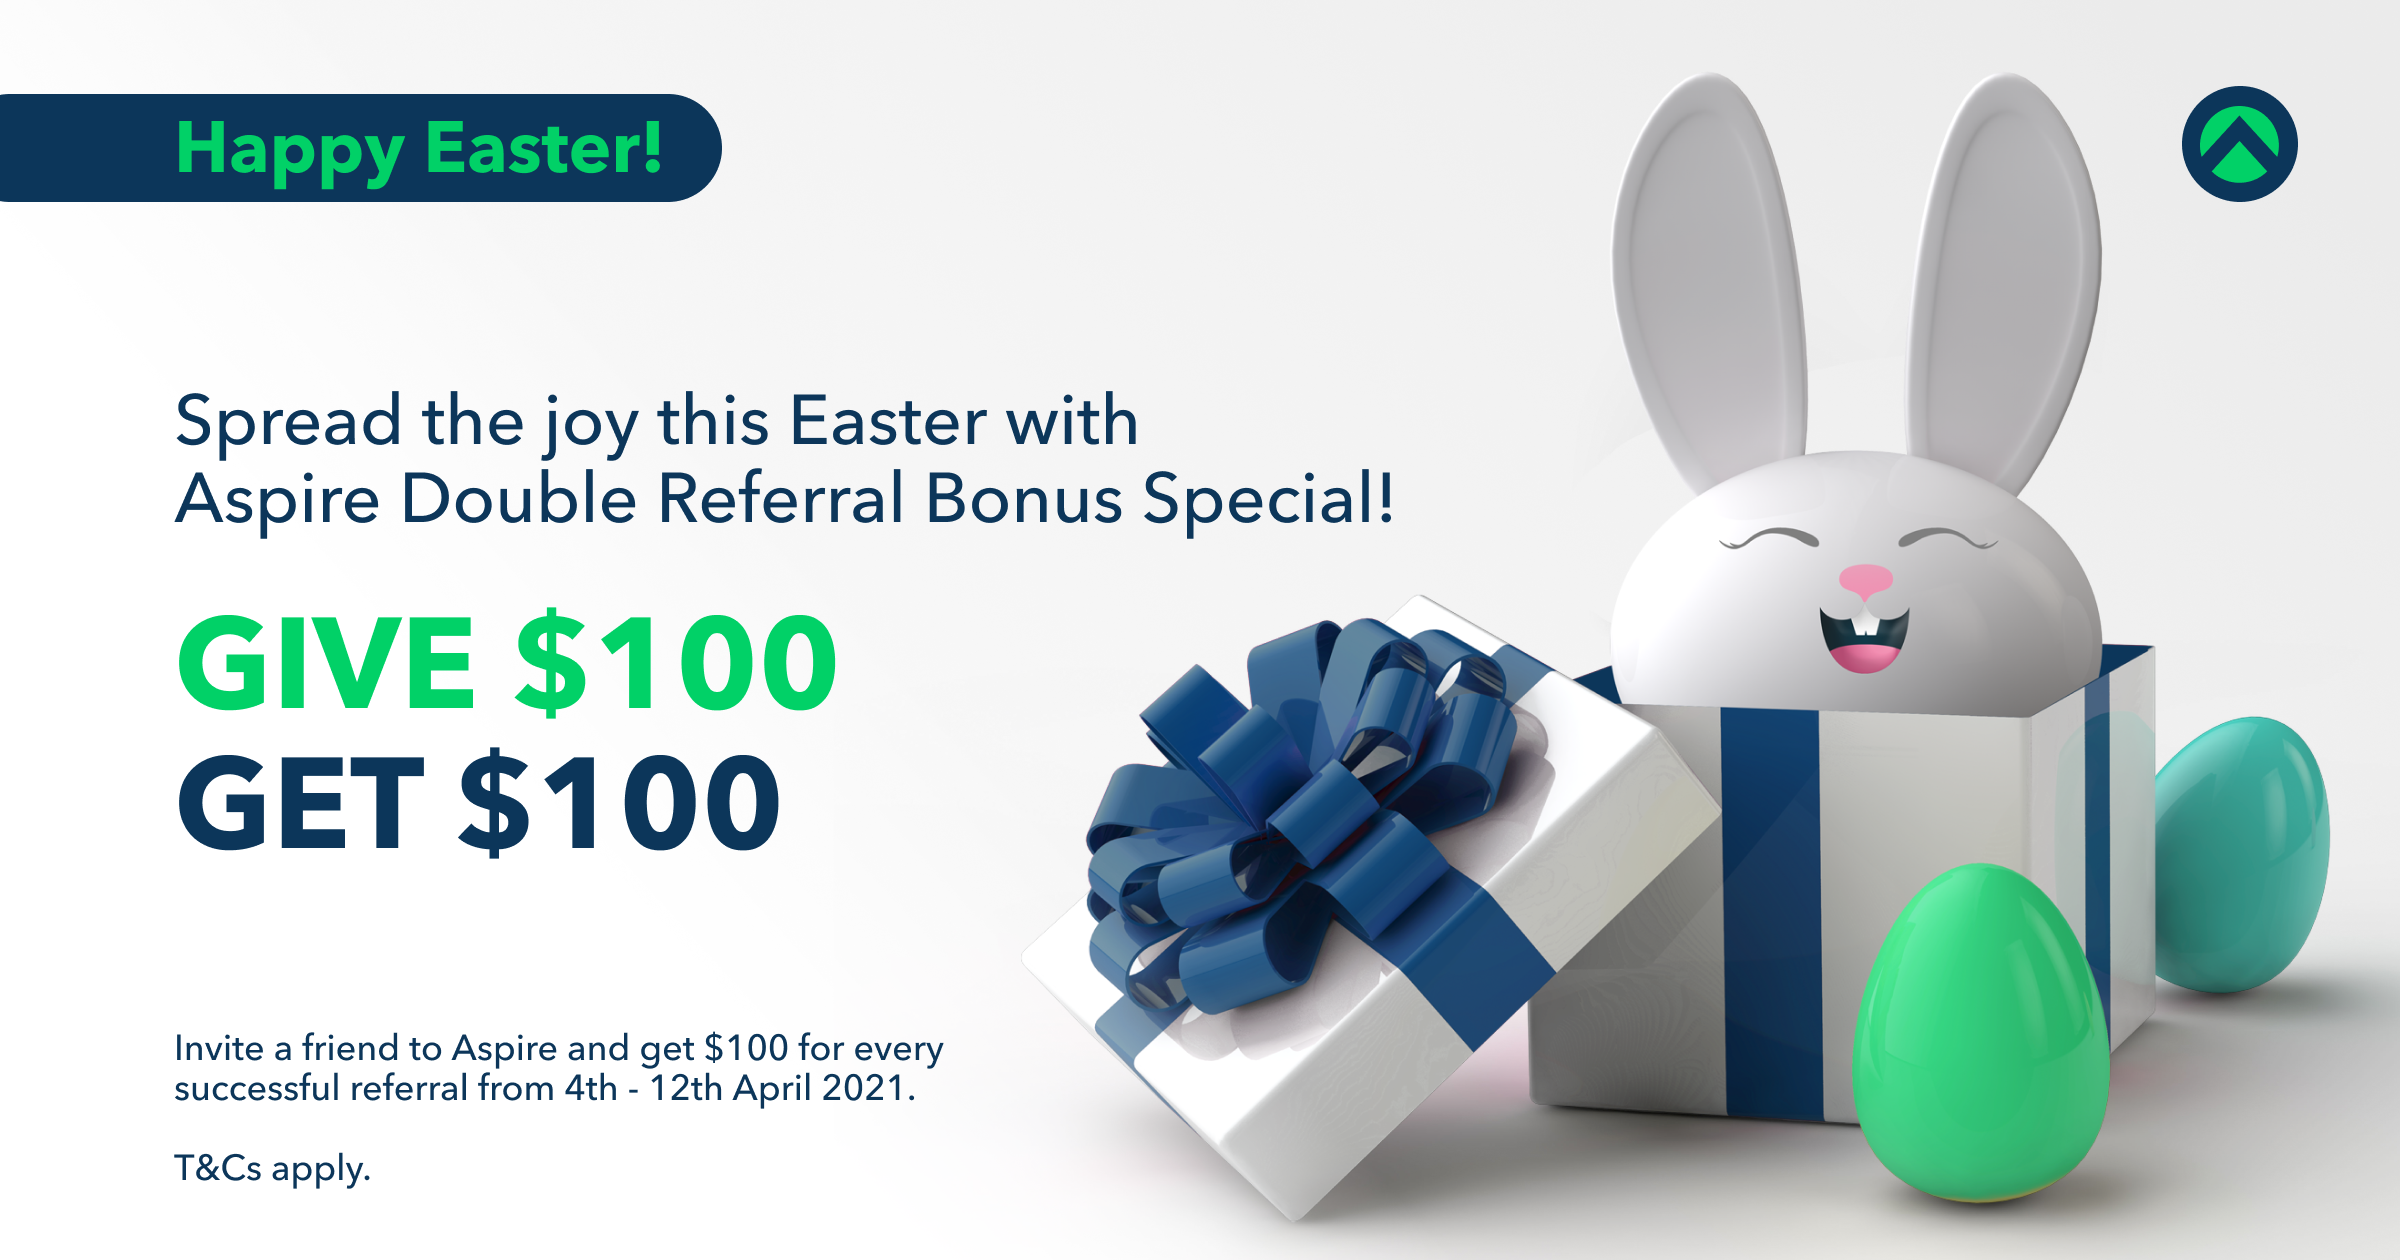 Spread the joy this Easter with Aspire. Give $100, Get $100!